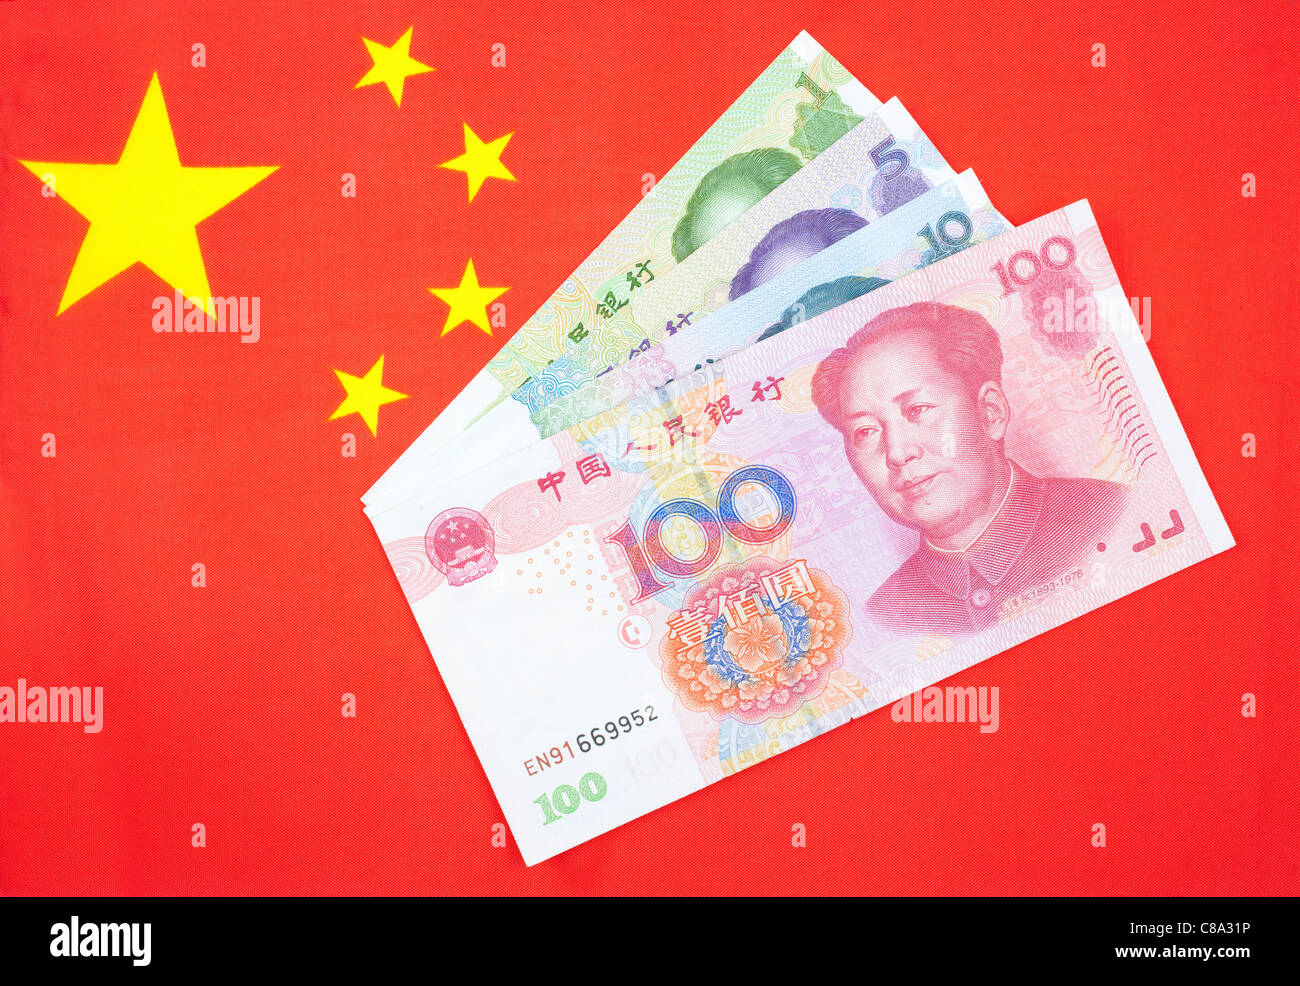 Chinese currency yuan notes on the chinese flag stock photo chinese currency yuan notes on the chinese flag buycottarizona Gallery